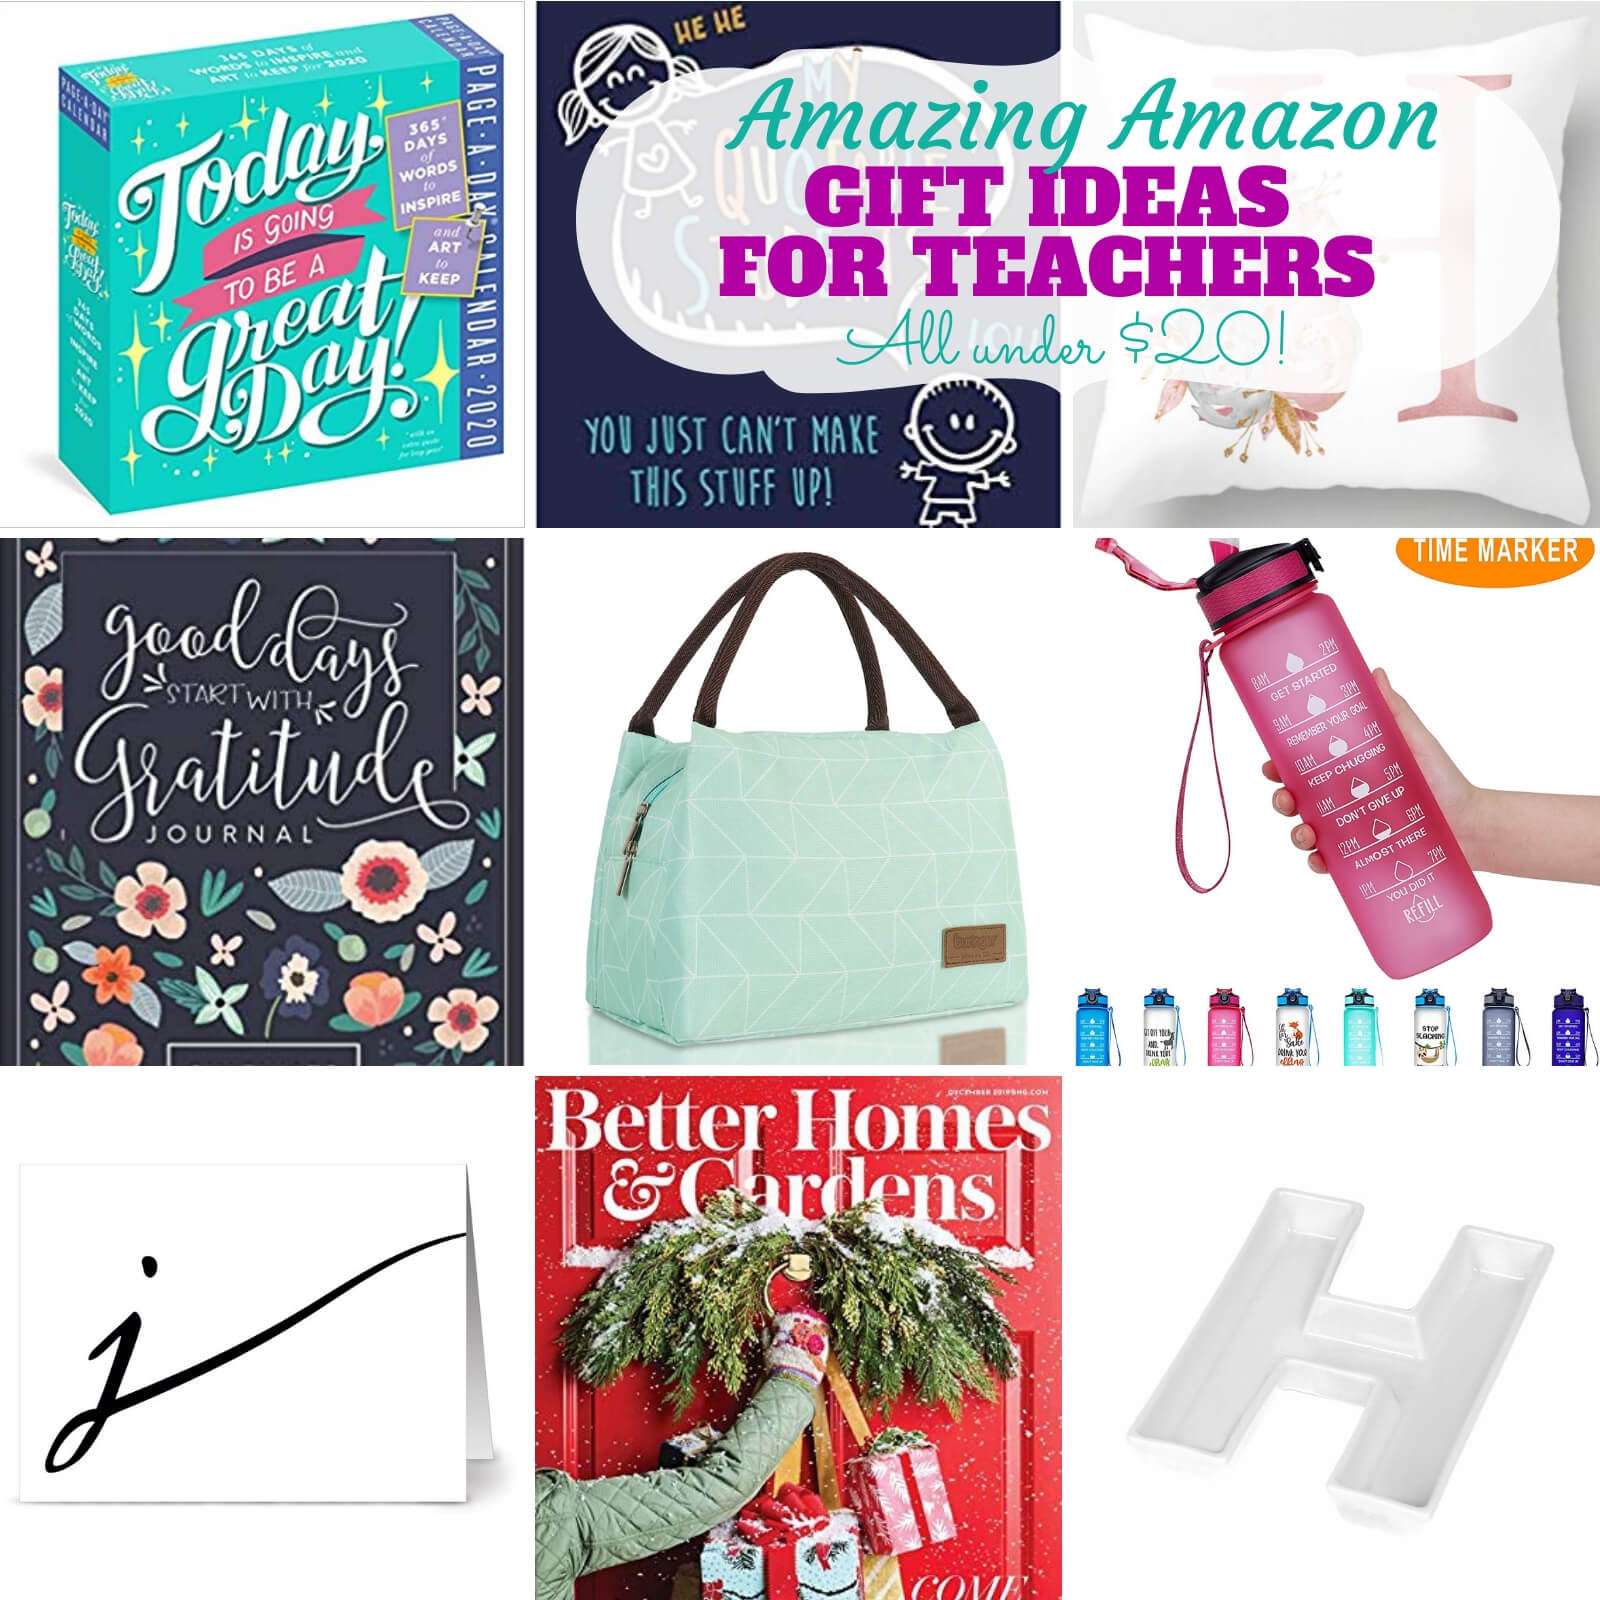 Amazing Amazon Gifts for Teachers Under $20